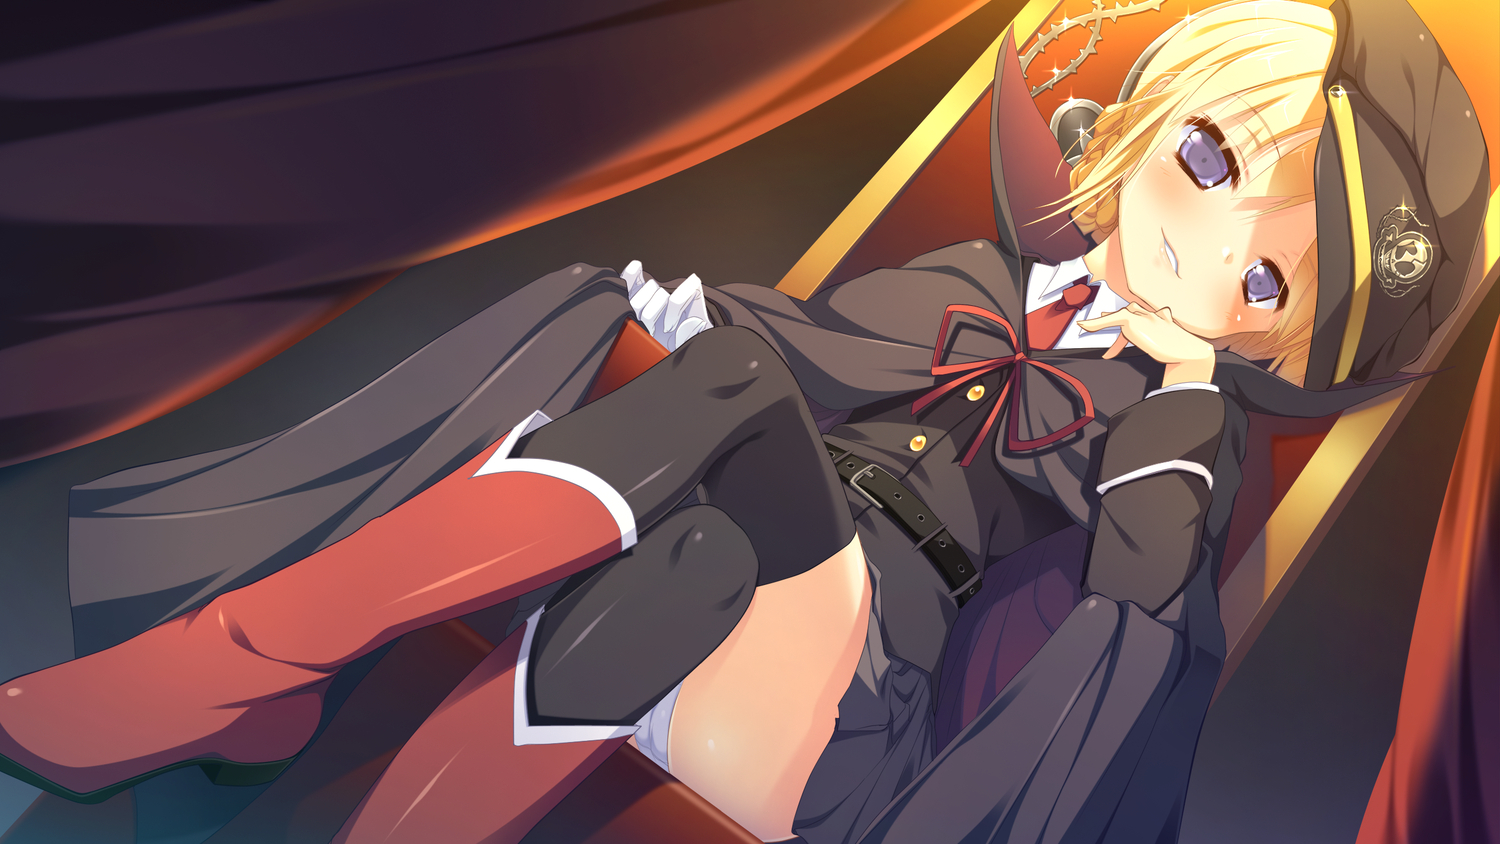 alcot amamoto_rui blonde_hair boots cape game_cg gloves hat naka_no_hito_nado_inai nimura_yuushi panties purple_eyes ribbons short_hair thighhighs tie underwear uniform